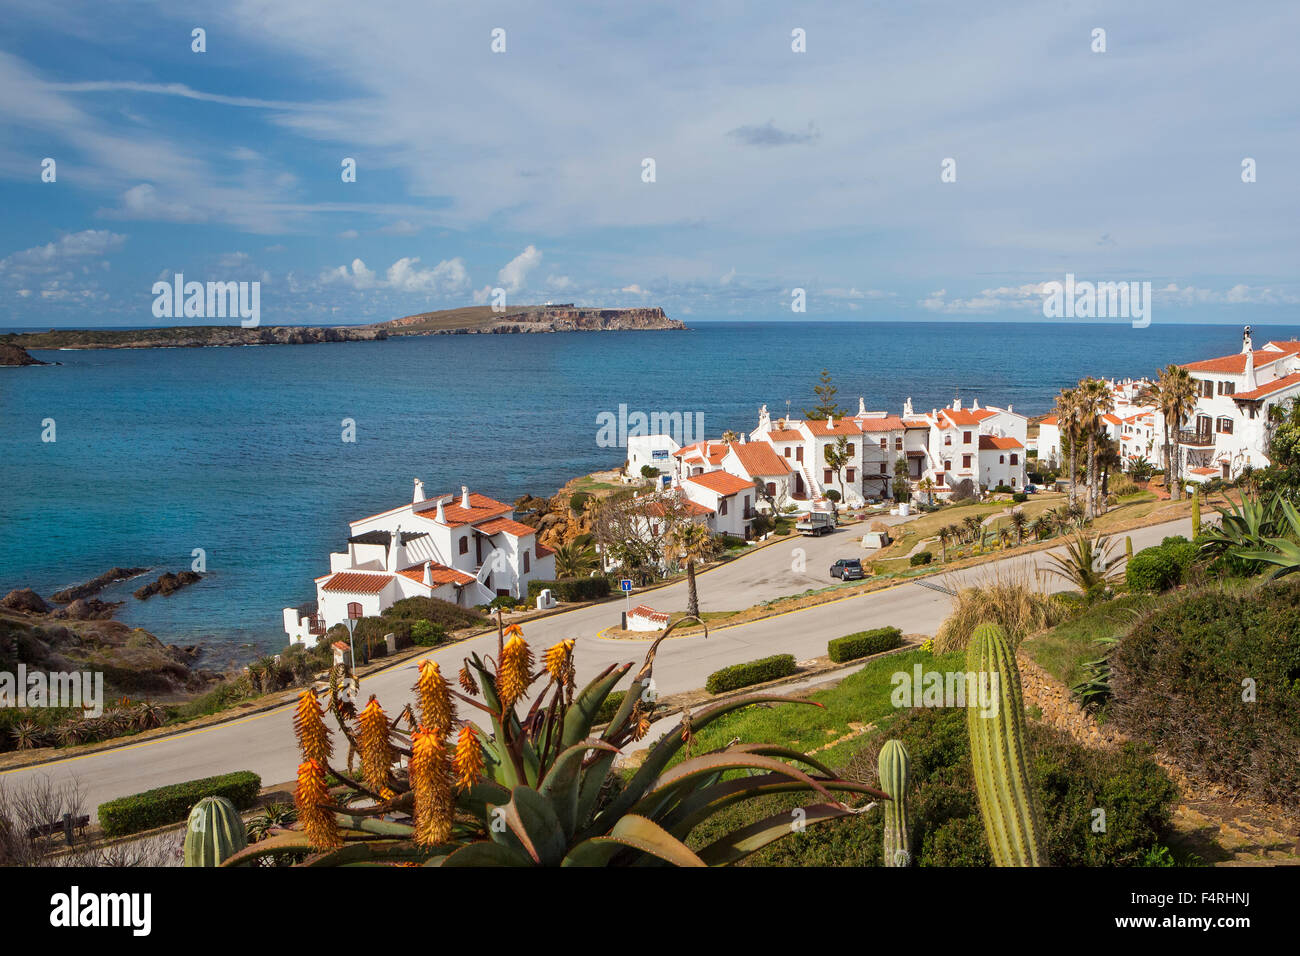 Fornells, Landscape, Menorca, Balearics, Spain, Europe, Spring, architecture, Balearic, colourful, Mediterranean, - Stock Image